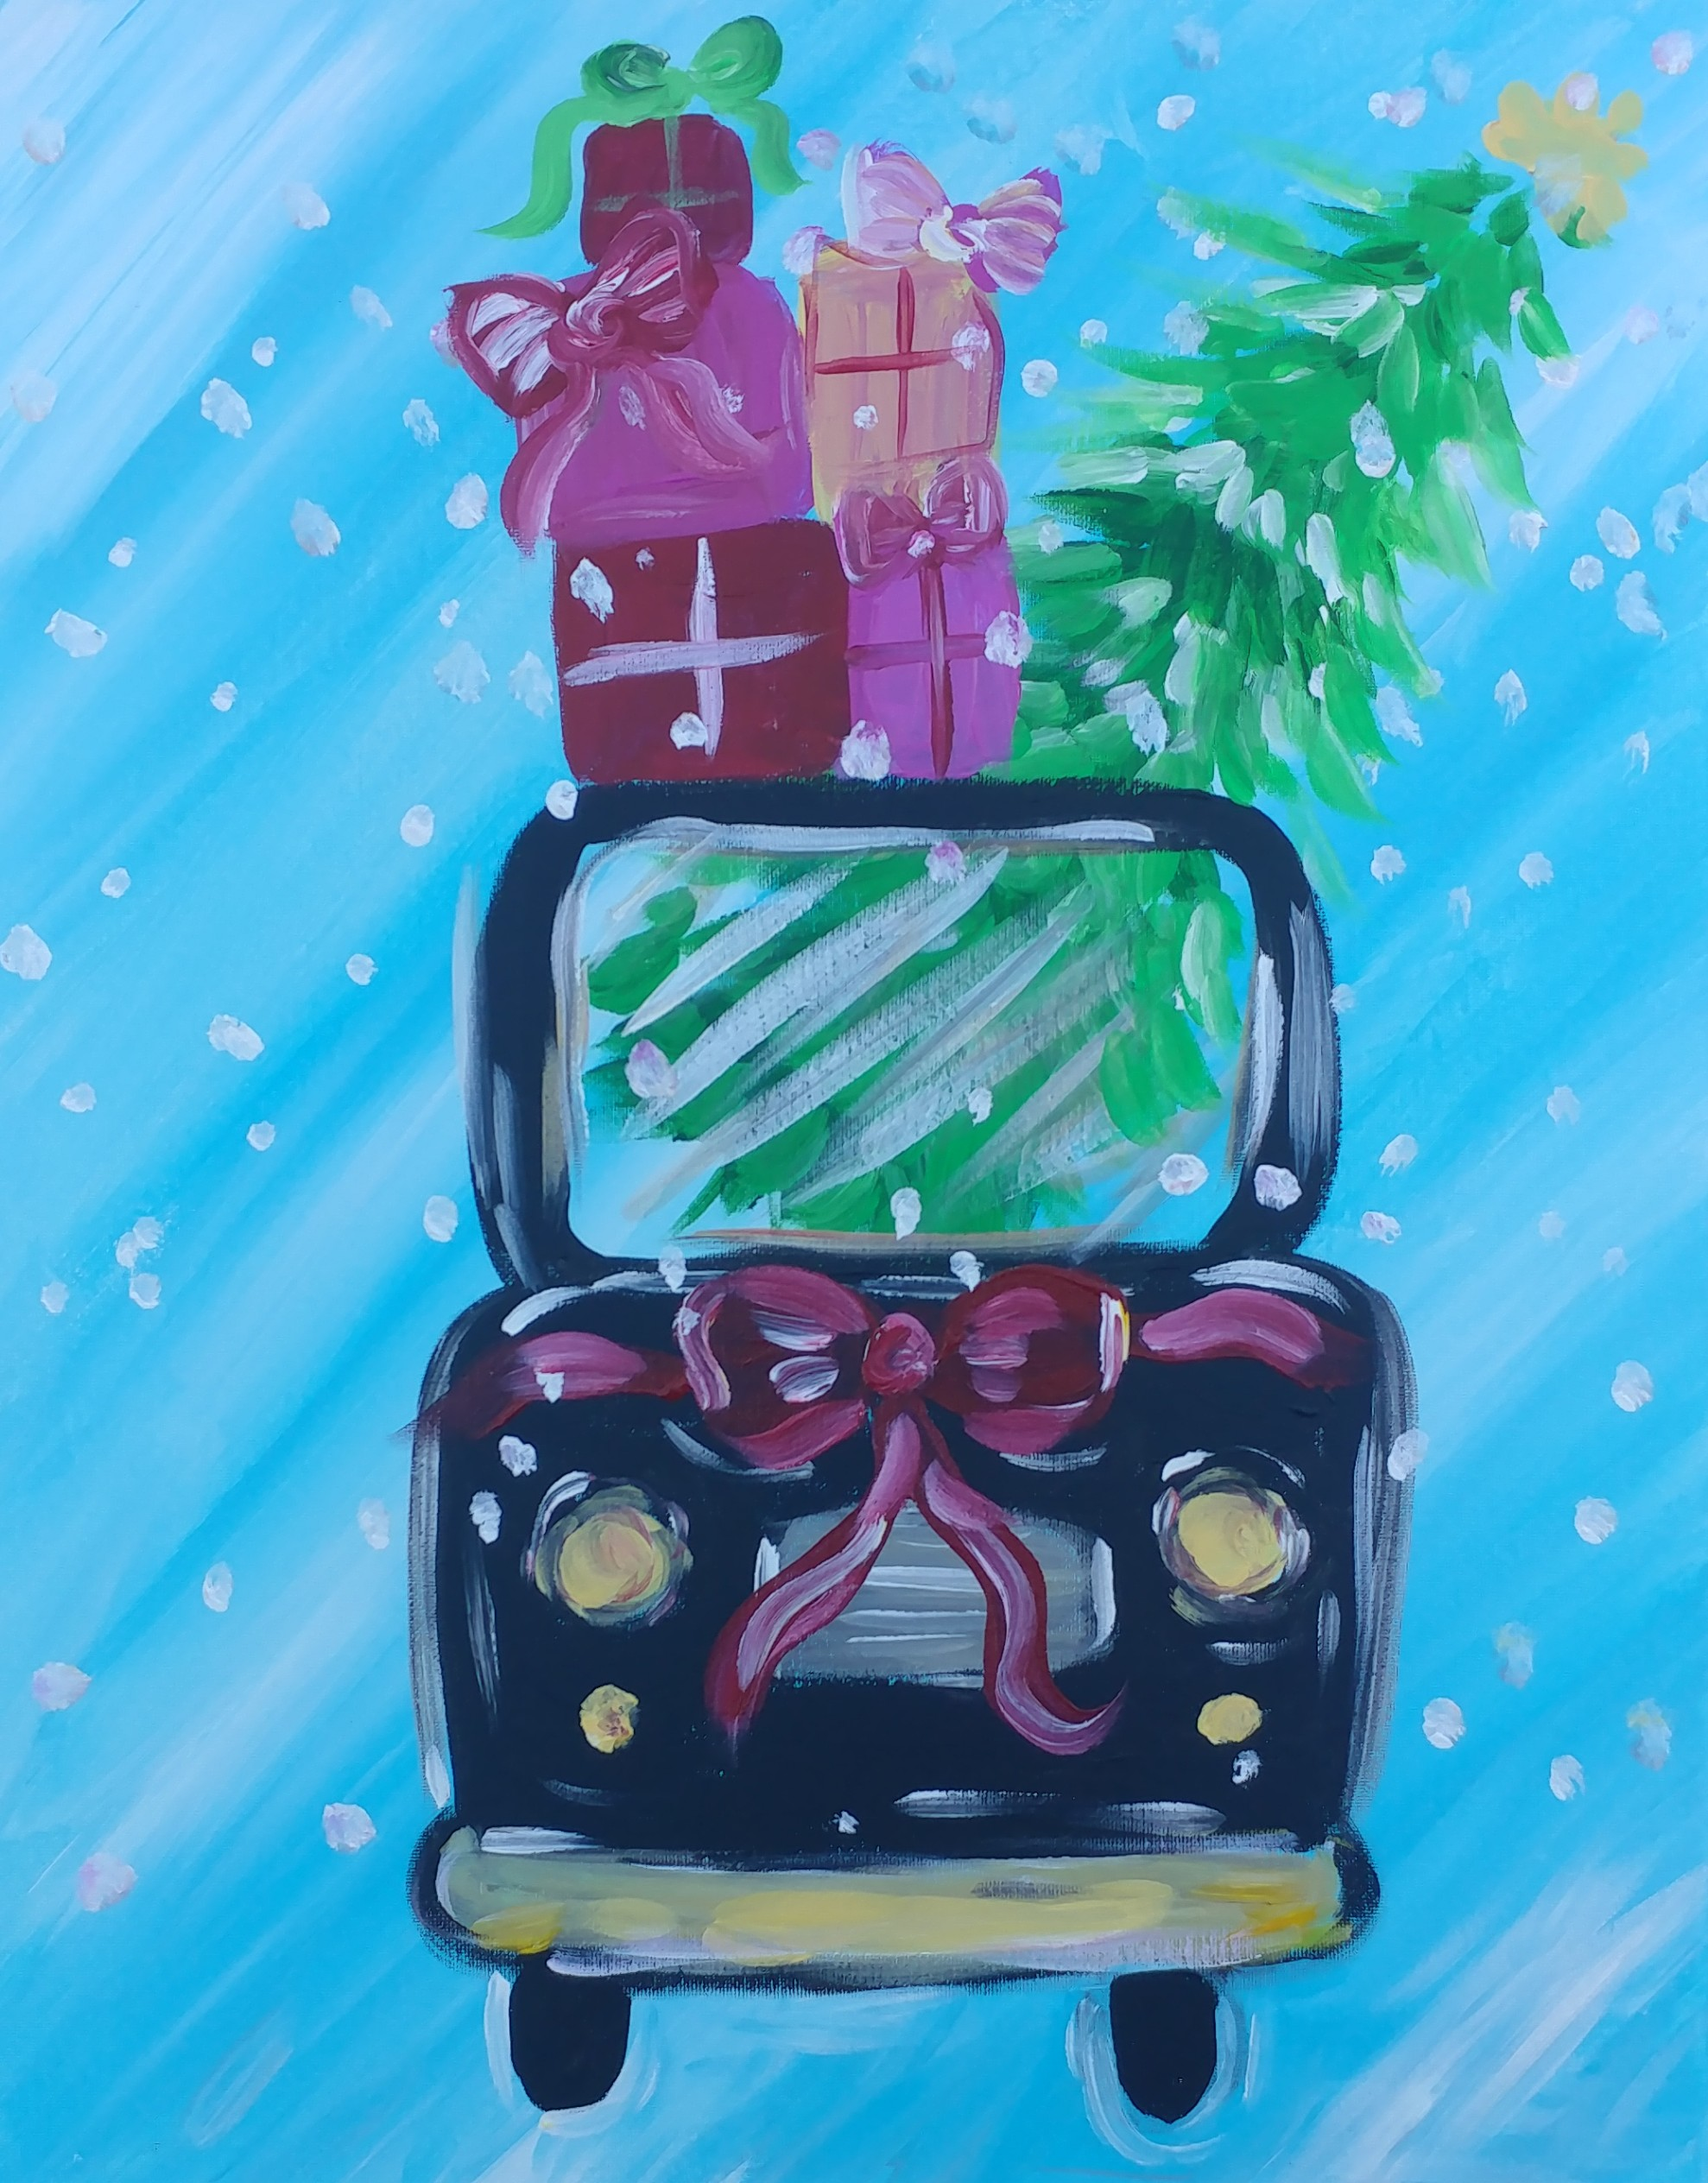 CHRISTMAS GIFTS TRUCK